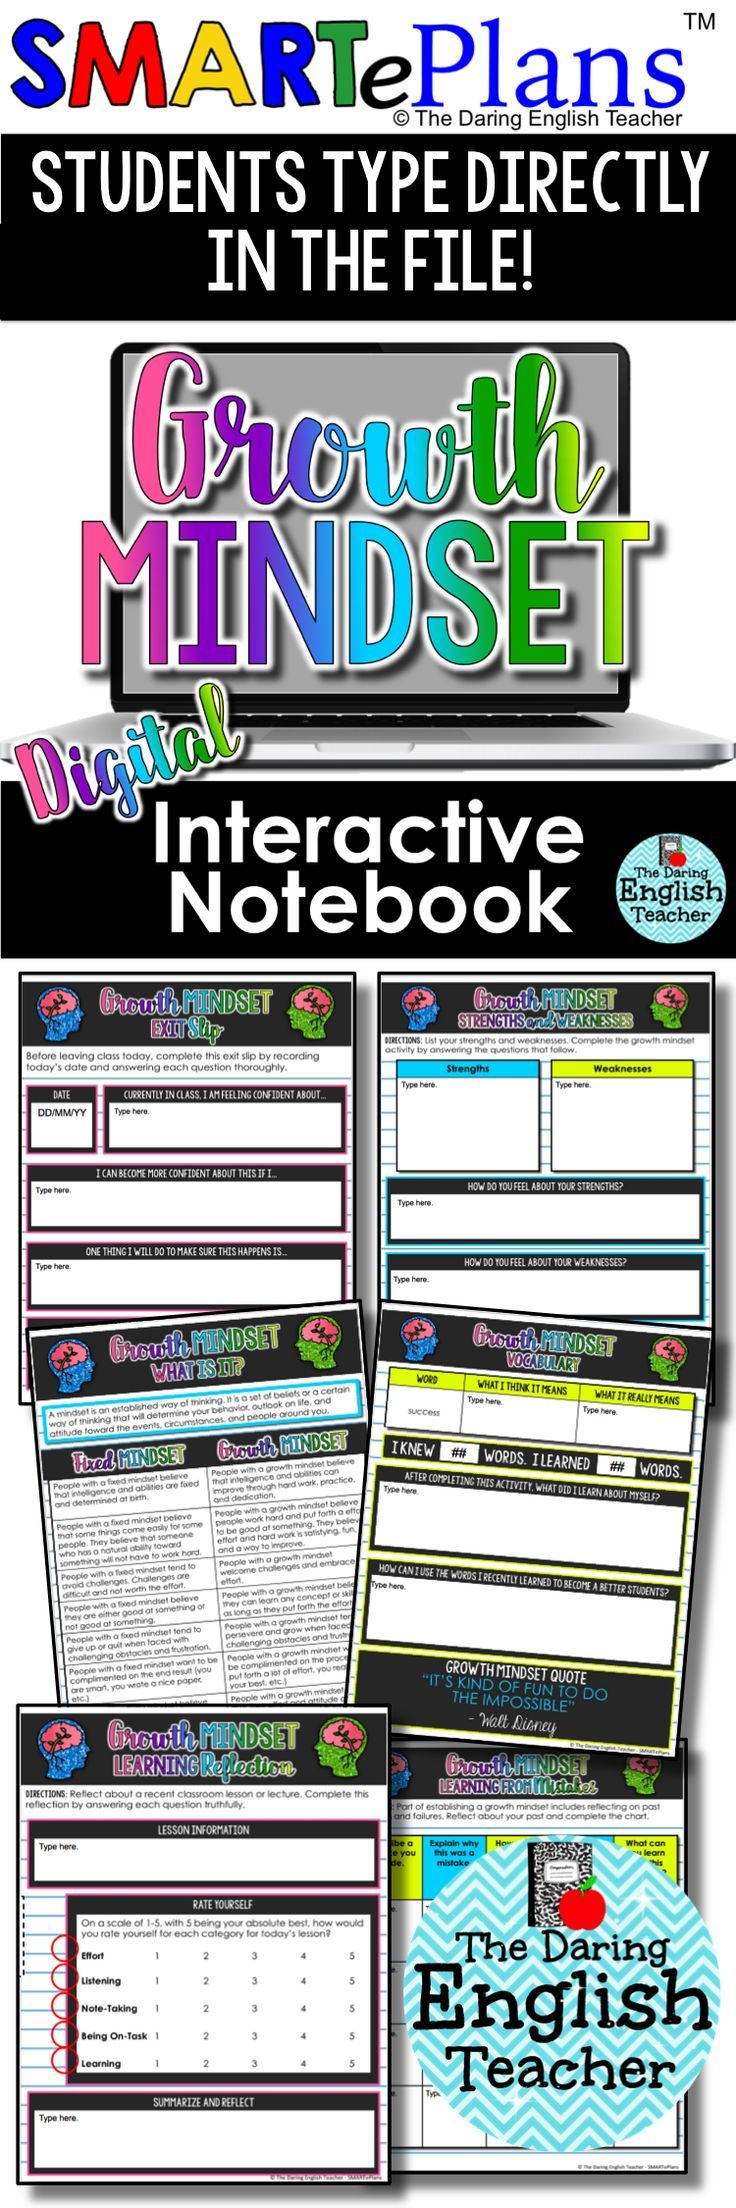 Growth Mindset Digital Interactive Notebook for the Secondary Classroom. Includes digital growth mindset activities, writing assignments, reflection forms, exit slips, and more. Ideal for the secondary classroom.